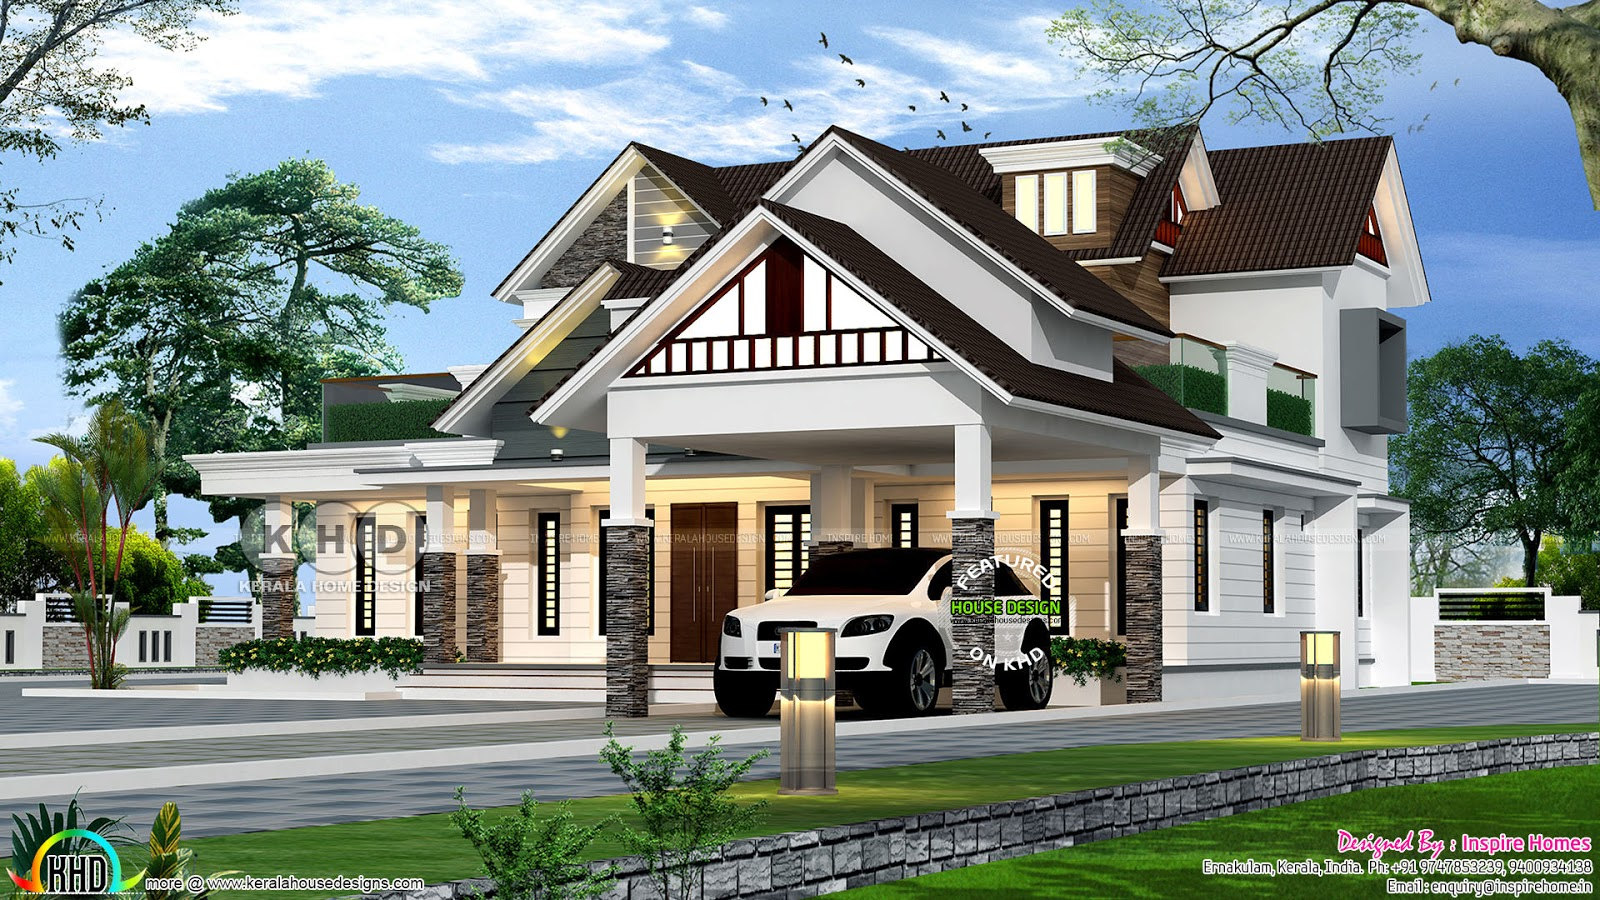 Nalukettu home in European style structure | Kerala home ... on future house plans, dream home house plans, minimalist house plans, bathroom house plans, contemporary home designs house plans, villas house plans, lighting house plans, vastu house plans, floor plan house plans, architects house plans, beautiful home house plans, utility house plans, interior house plans, kerala house plans, mansion house plans, amazing house plans, exterior house plans, unusual house plans, front door house plans, creative house plans,